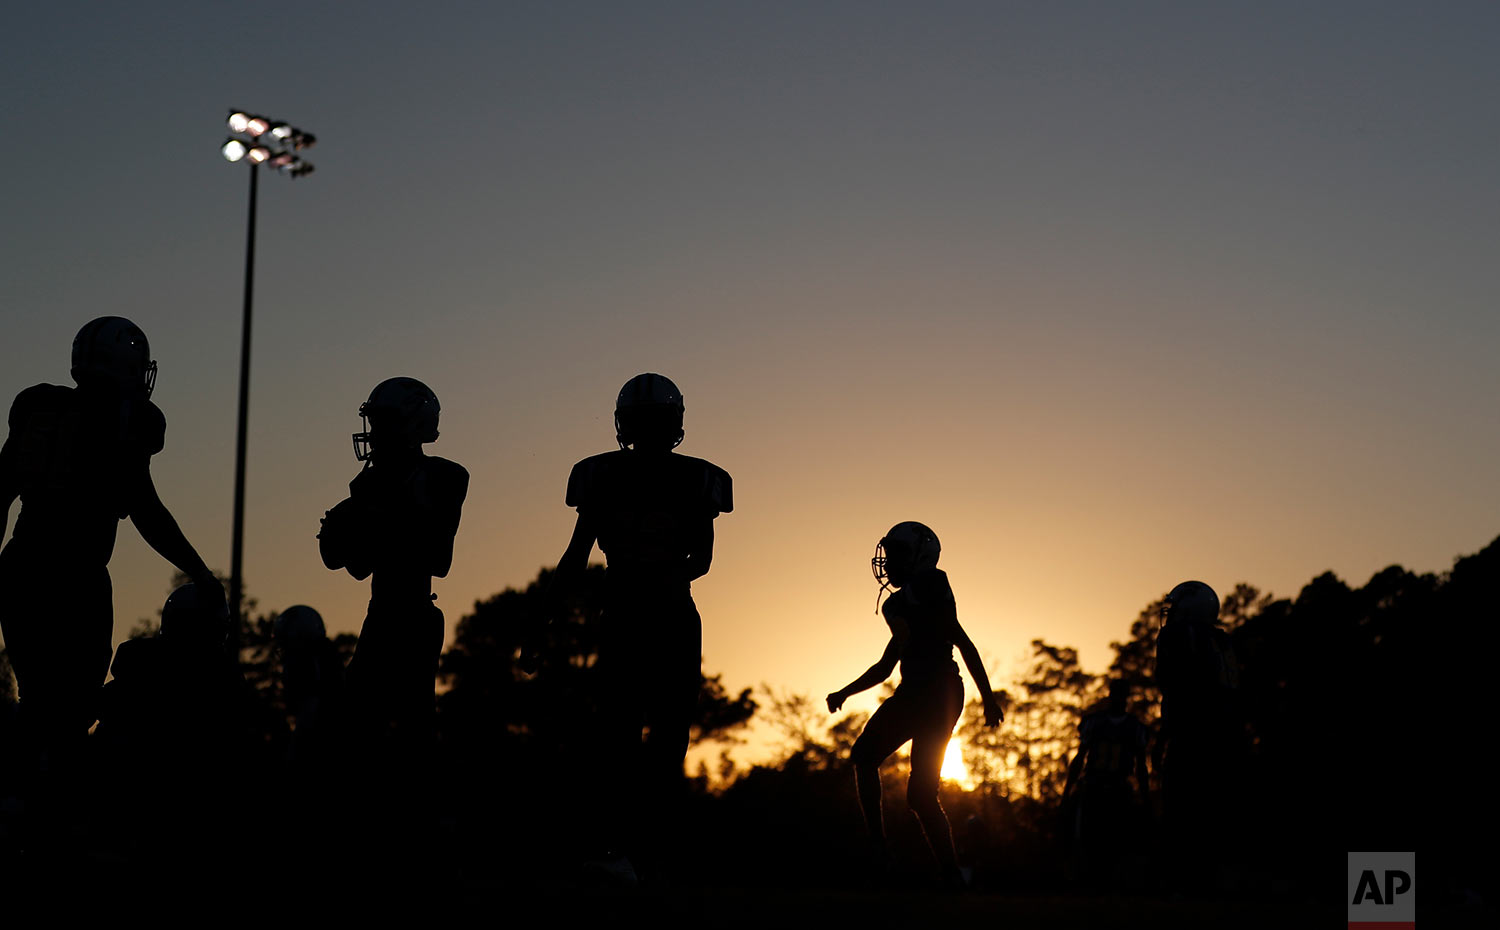 South Robeson High School football players warm up before a game in Rowland, N.C., Friday, Oct. 27, 2017. (AP Photo/David Goldman)